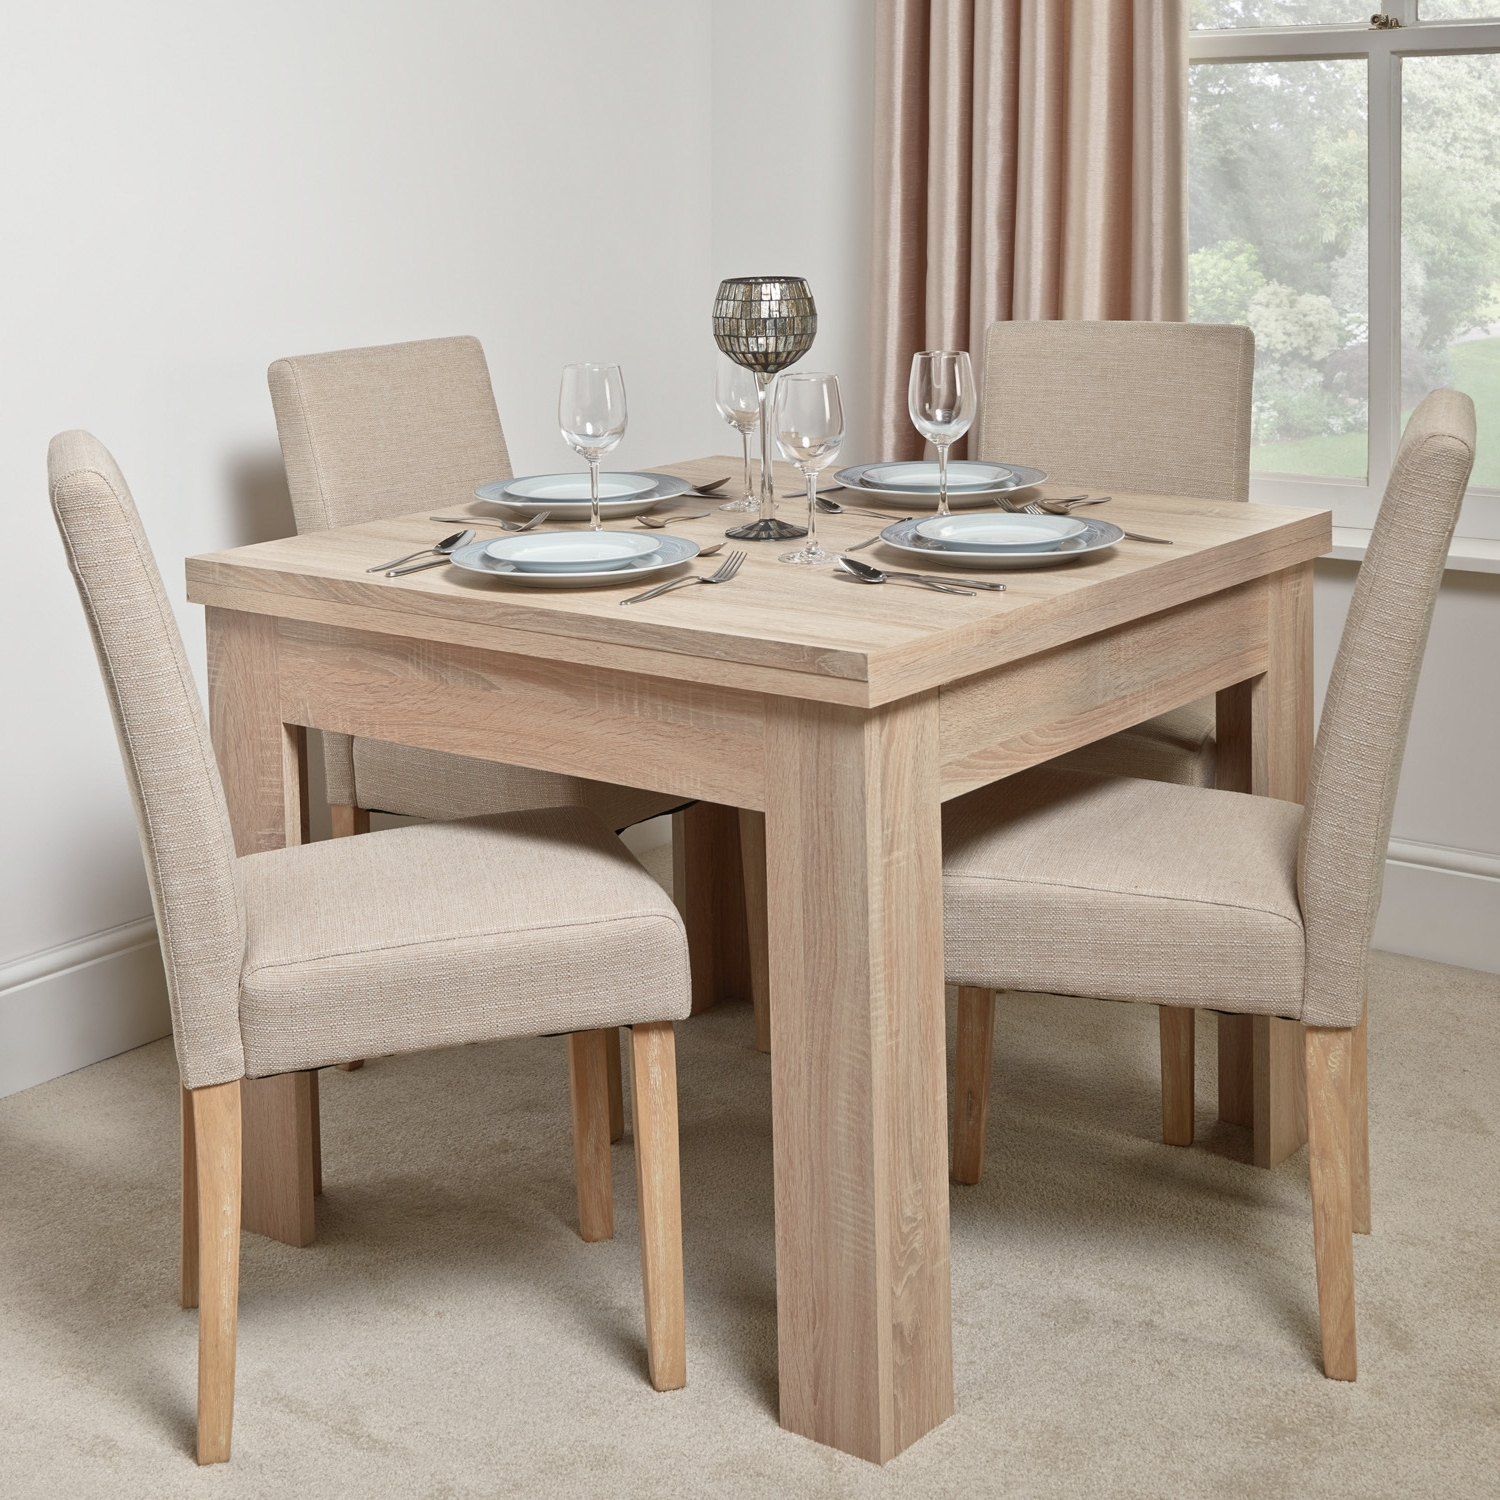 Calpe Flip Extending Dining Table With Regard To Popular Dining Extending Tables And Chairs (View 4 of 25)